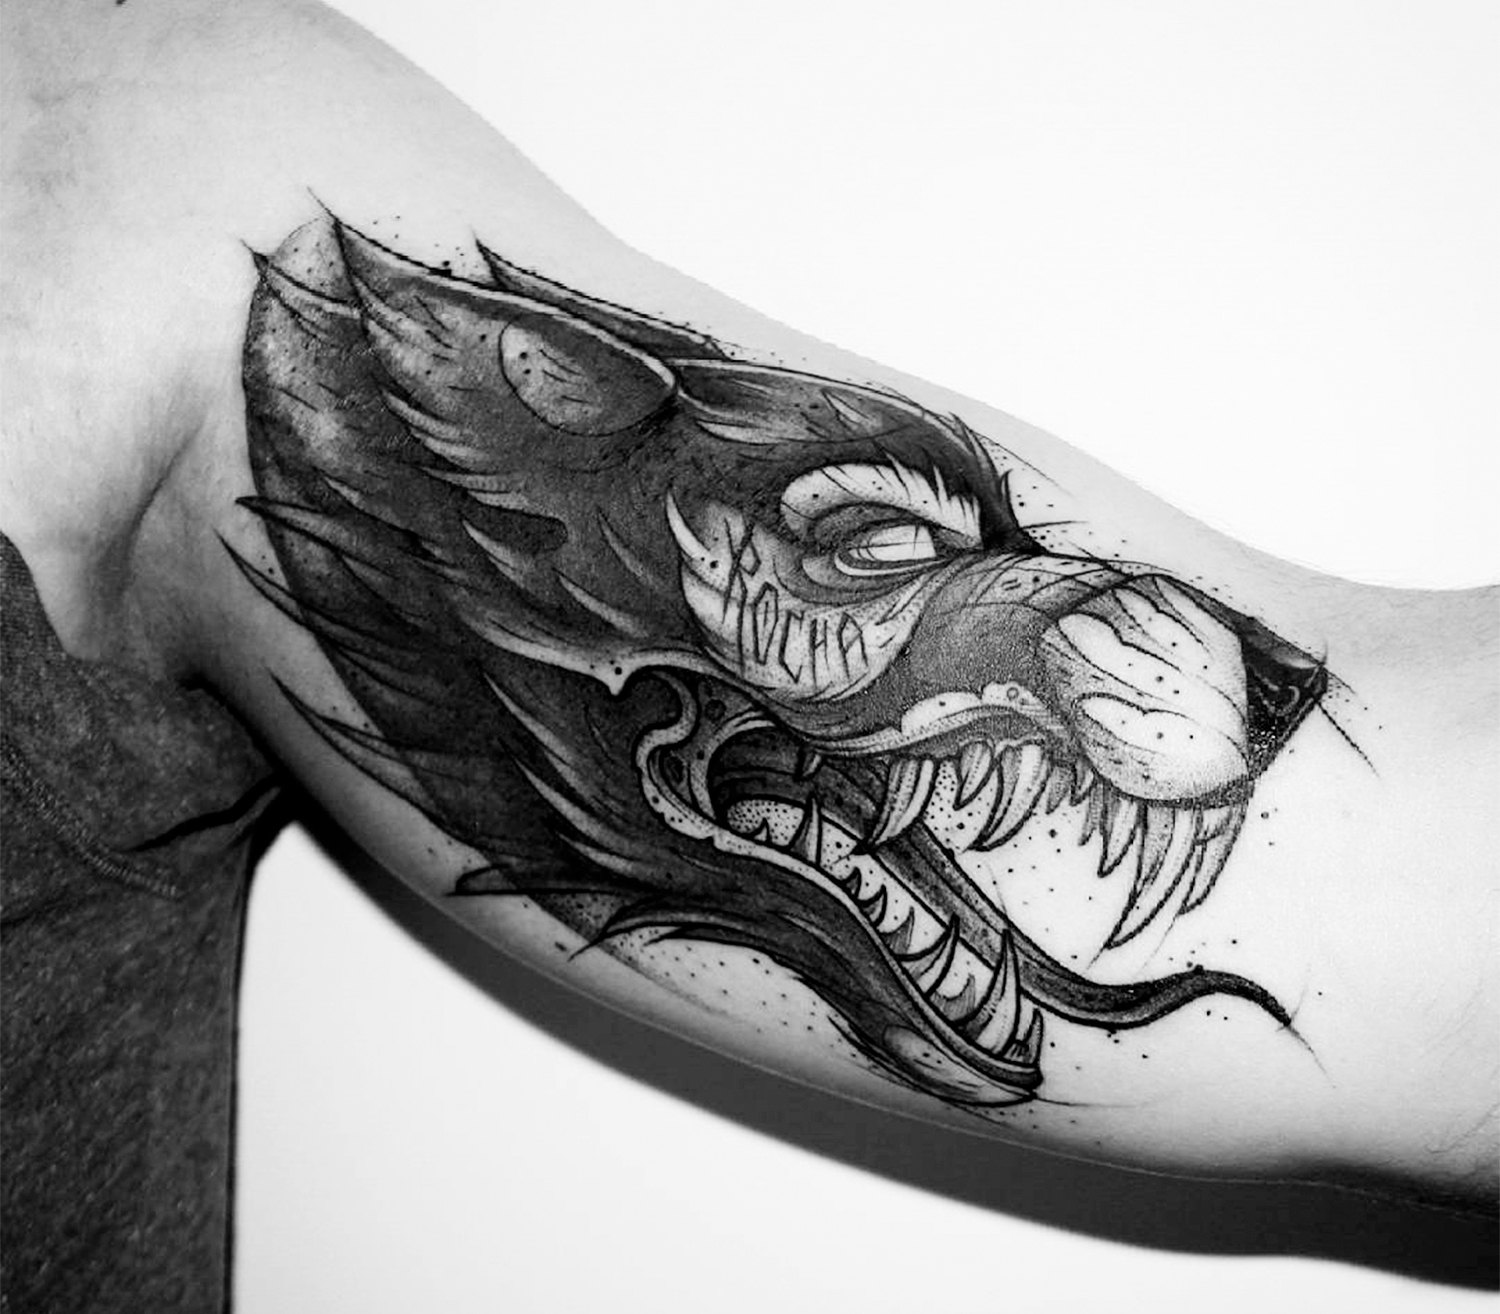 custom wolf tattoo inner arm, by kati berinkey